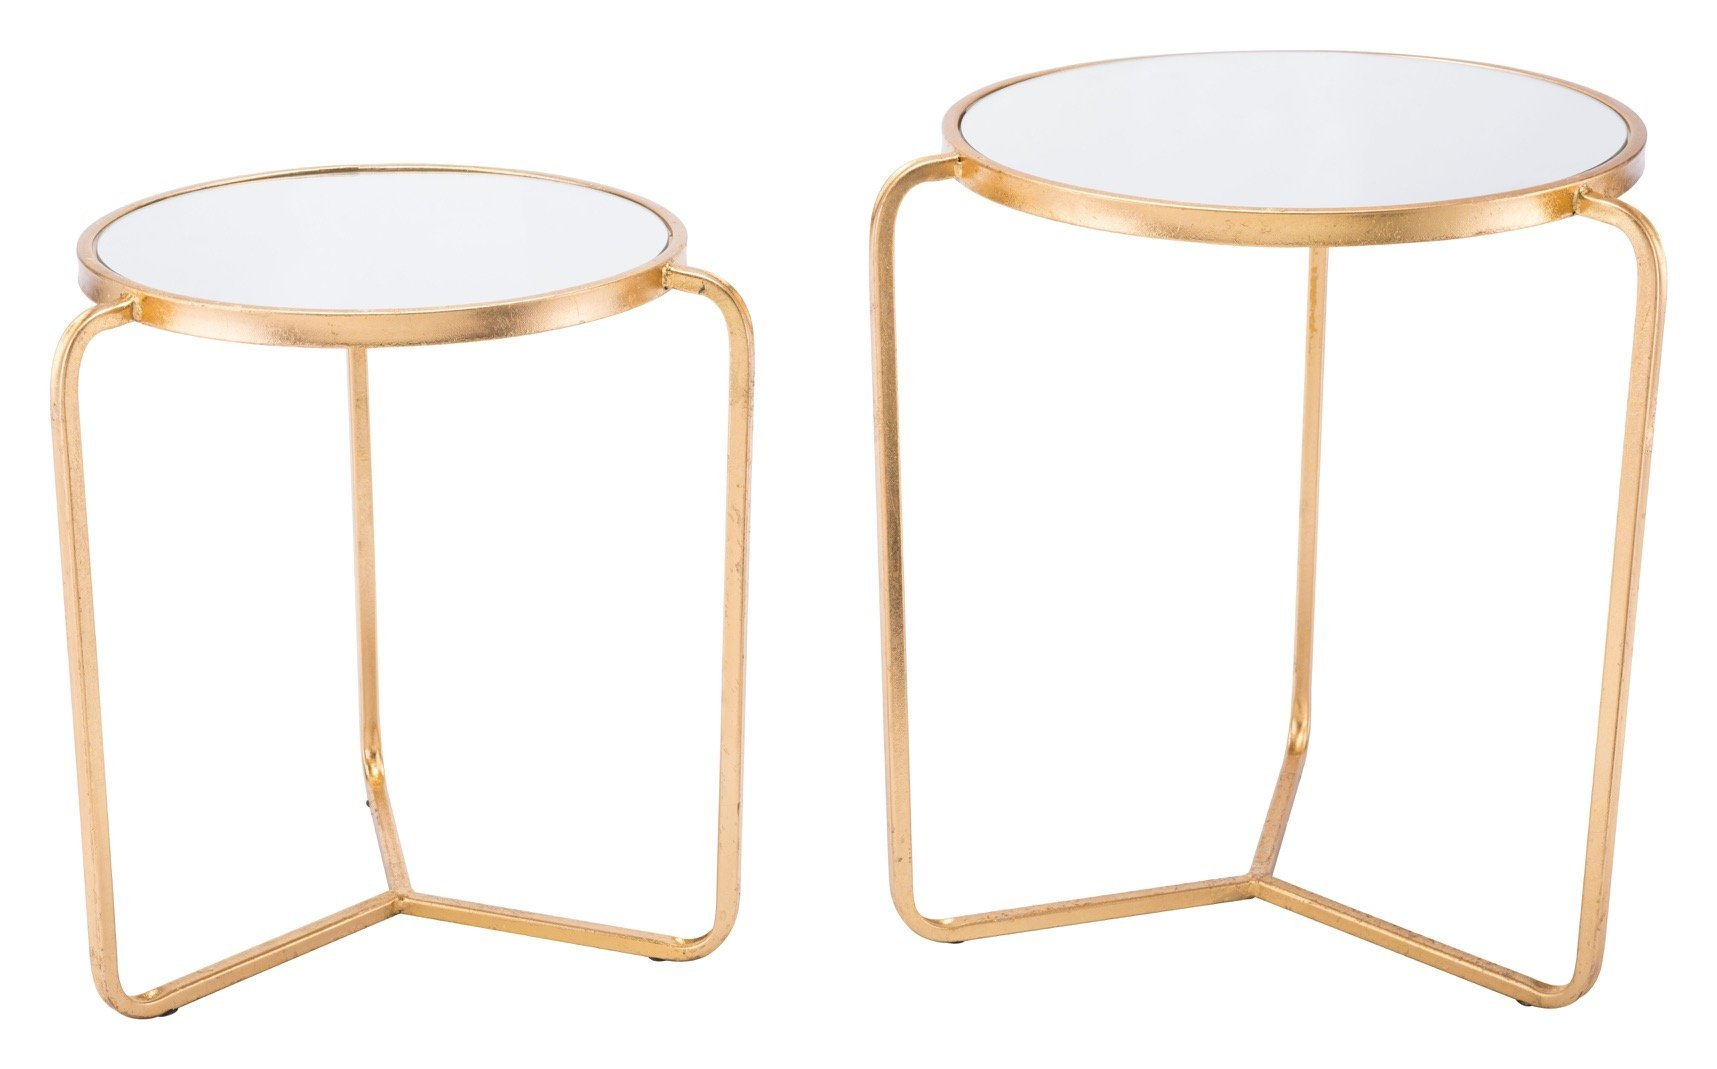 set tripod accent tables gold with mirrored top side alan decor table end unusual coffee mid century lounge chair dining linens wine rack cocktail patio swing silver trunk room